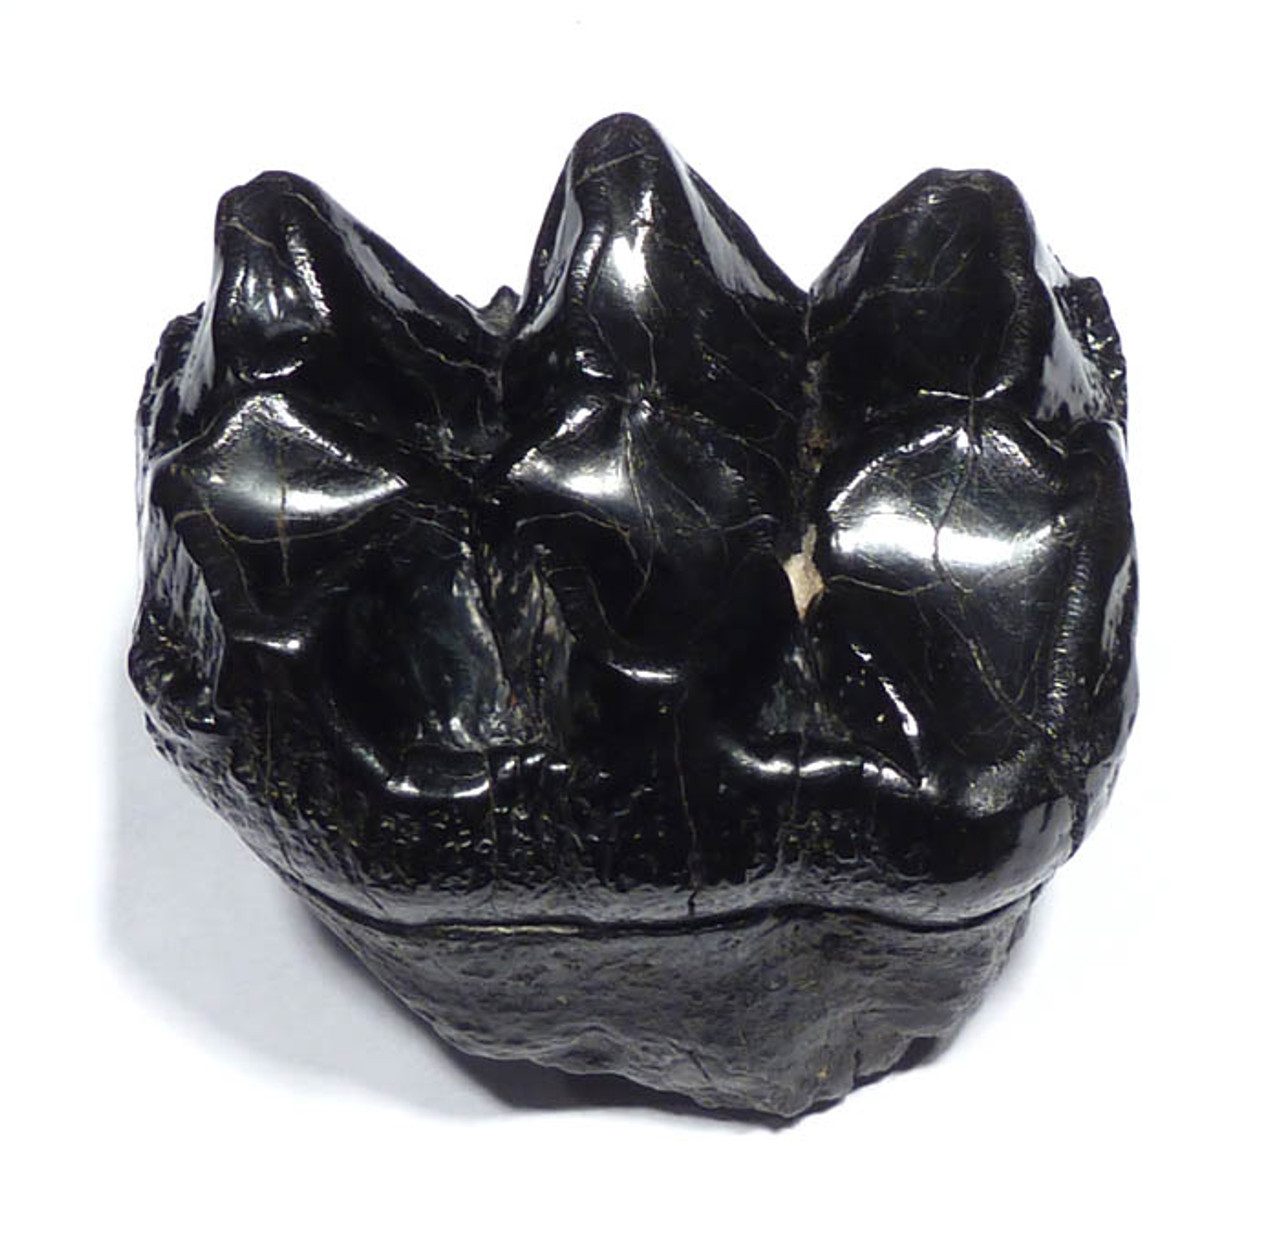 LM15-039 - SUPREME BABY MASTODON ELEPHANT MOLAR  WITH INTERESTING TOOTH DECAY CAVITY